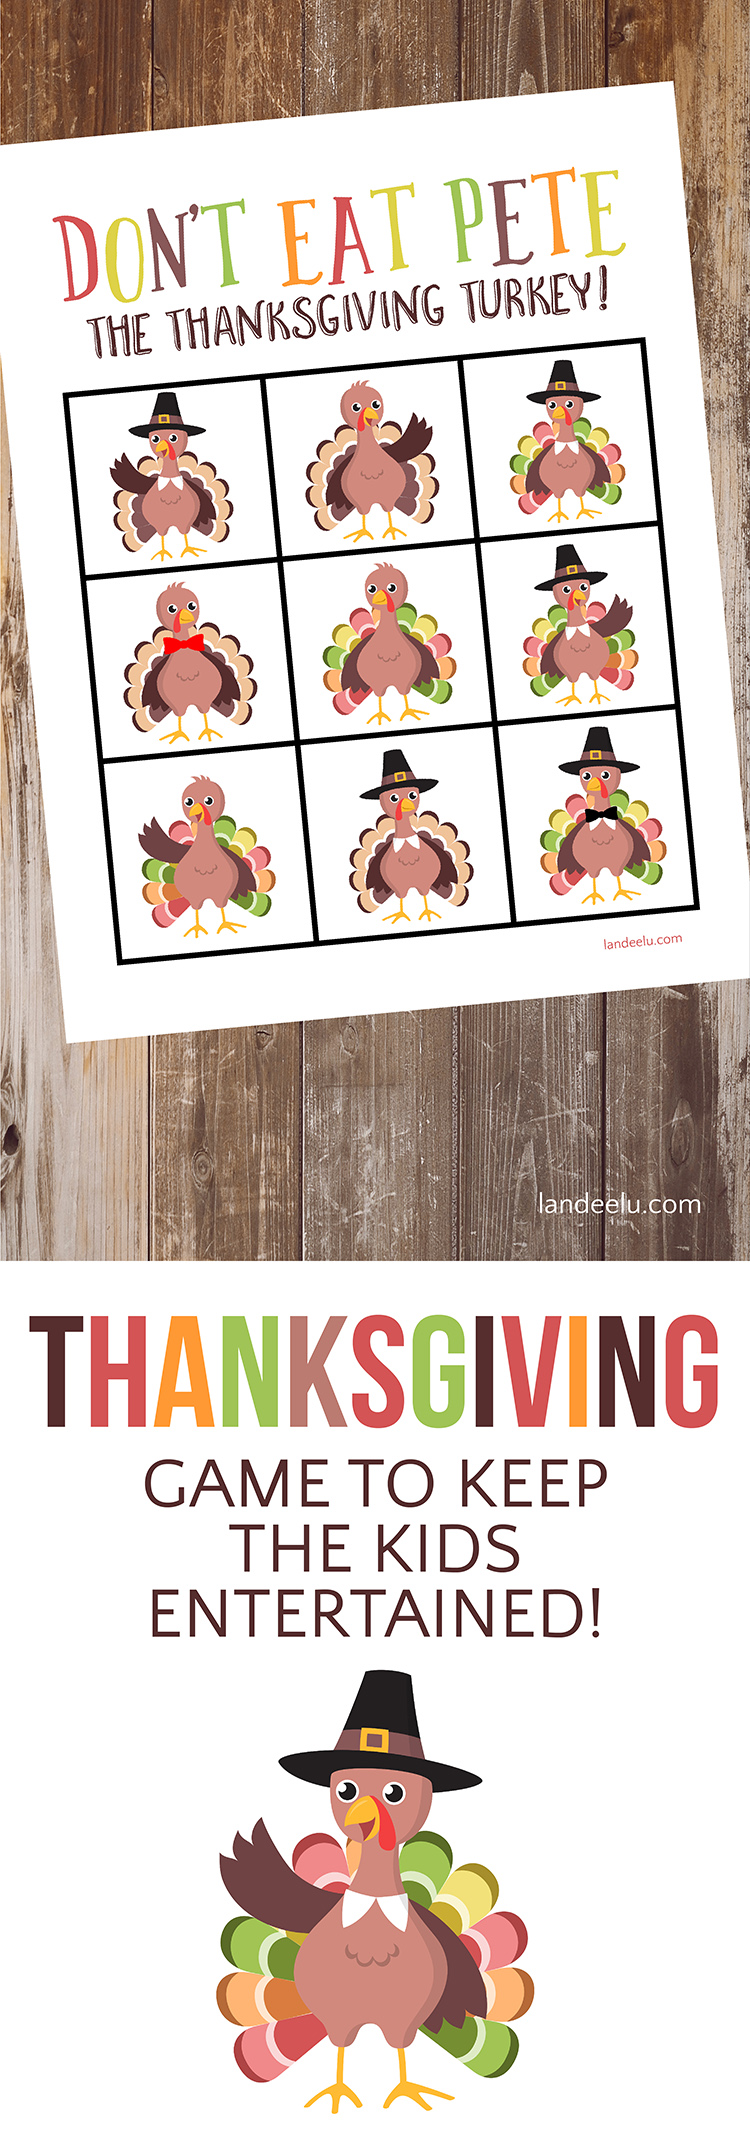 Print this fun Thanksgivng Game to keep the kids entertained while you're getting dinner on the table! Don't Eat Pete the Thanksgiving Turkey!